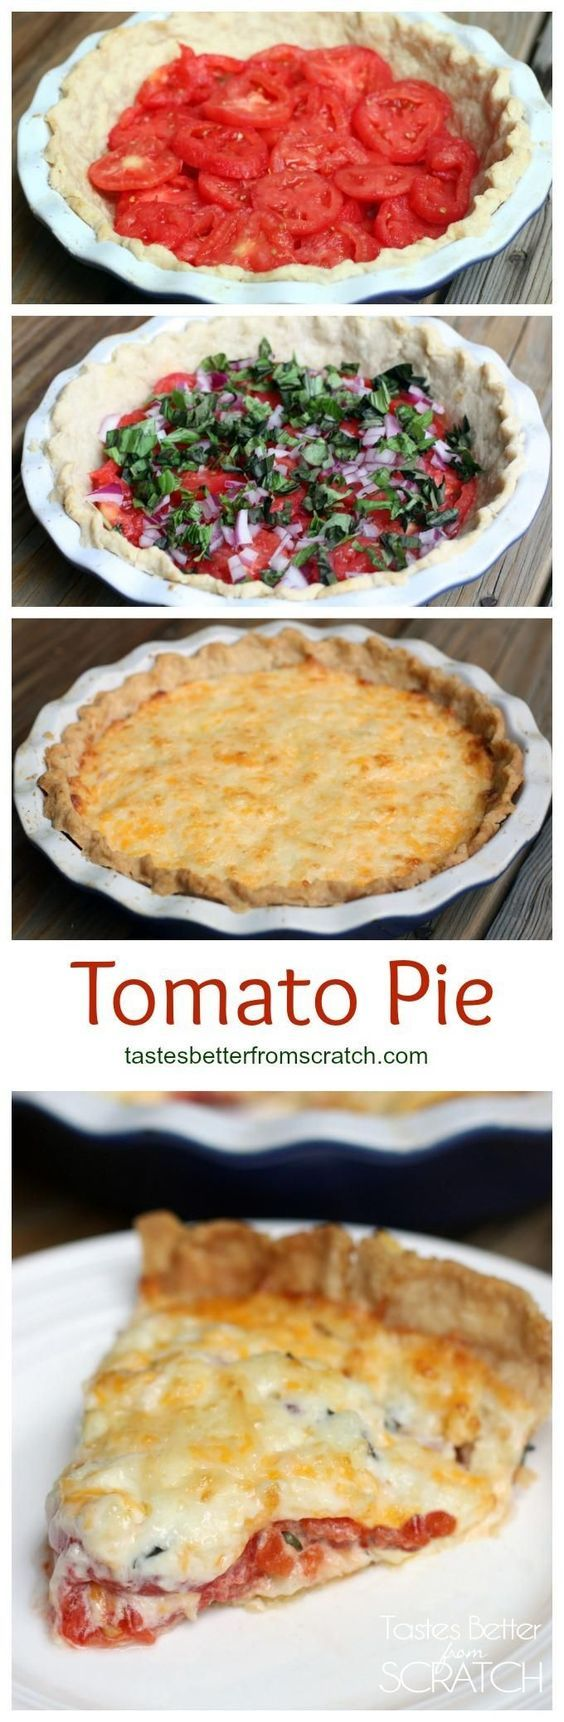 Tomato Pie- a savory summertime pie with layers of fresh tomatoes fresh basil and a delicious cheese mixture.